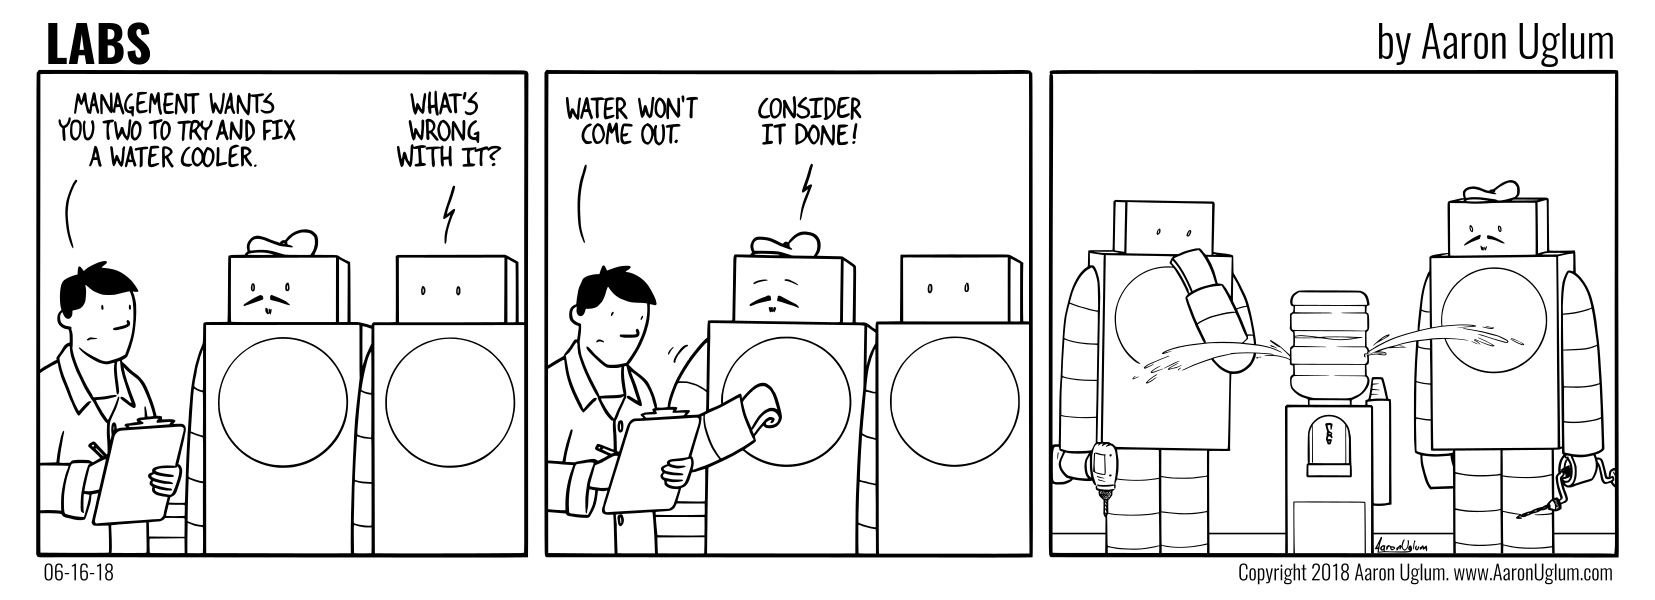 LABS 06/16/18 - Claude Helps Fix a Water Cooler